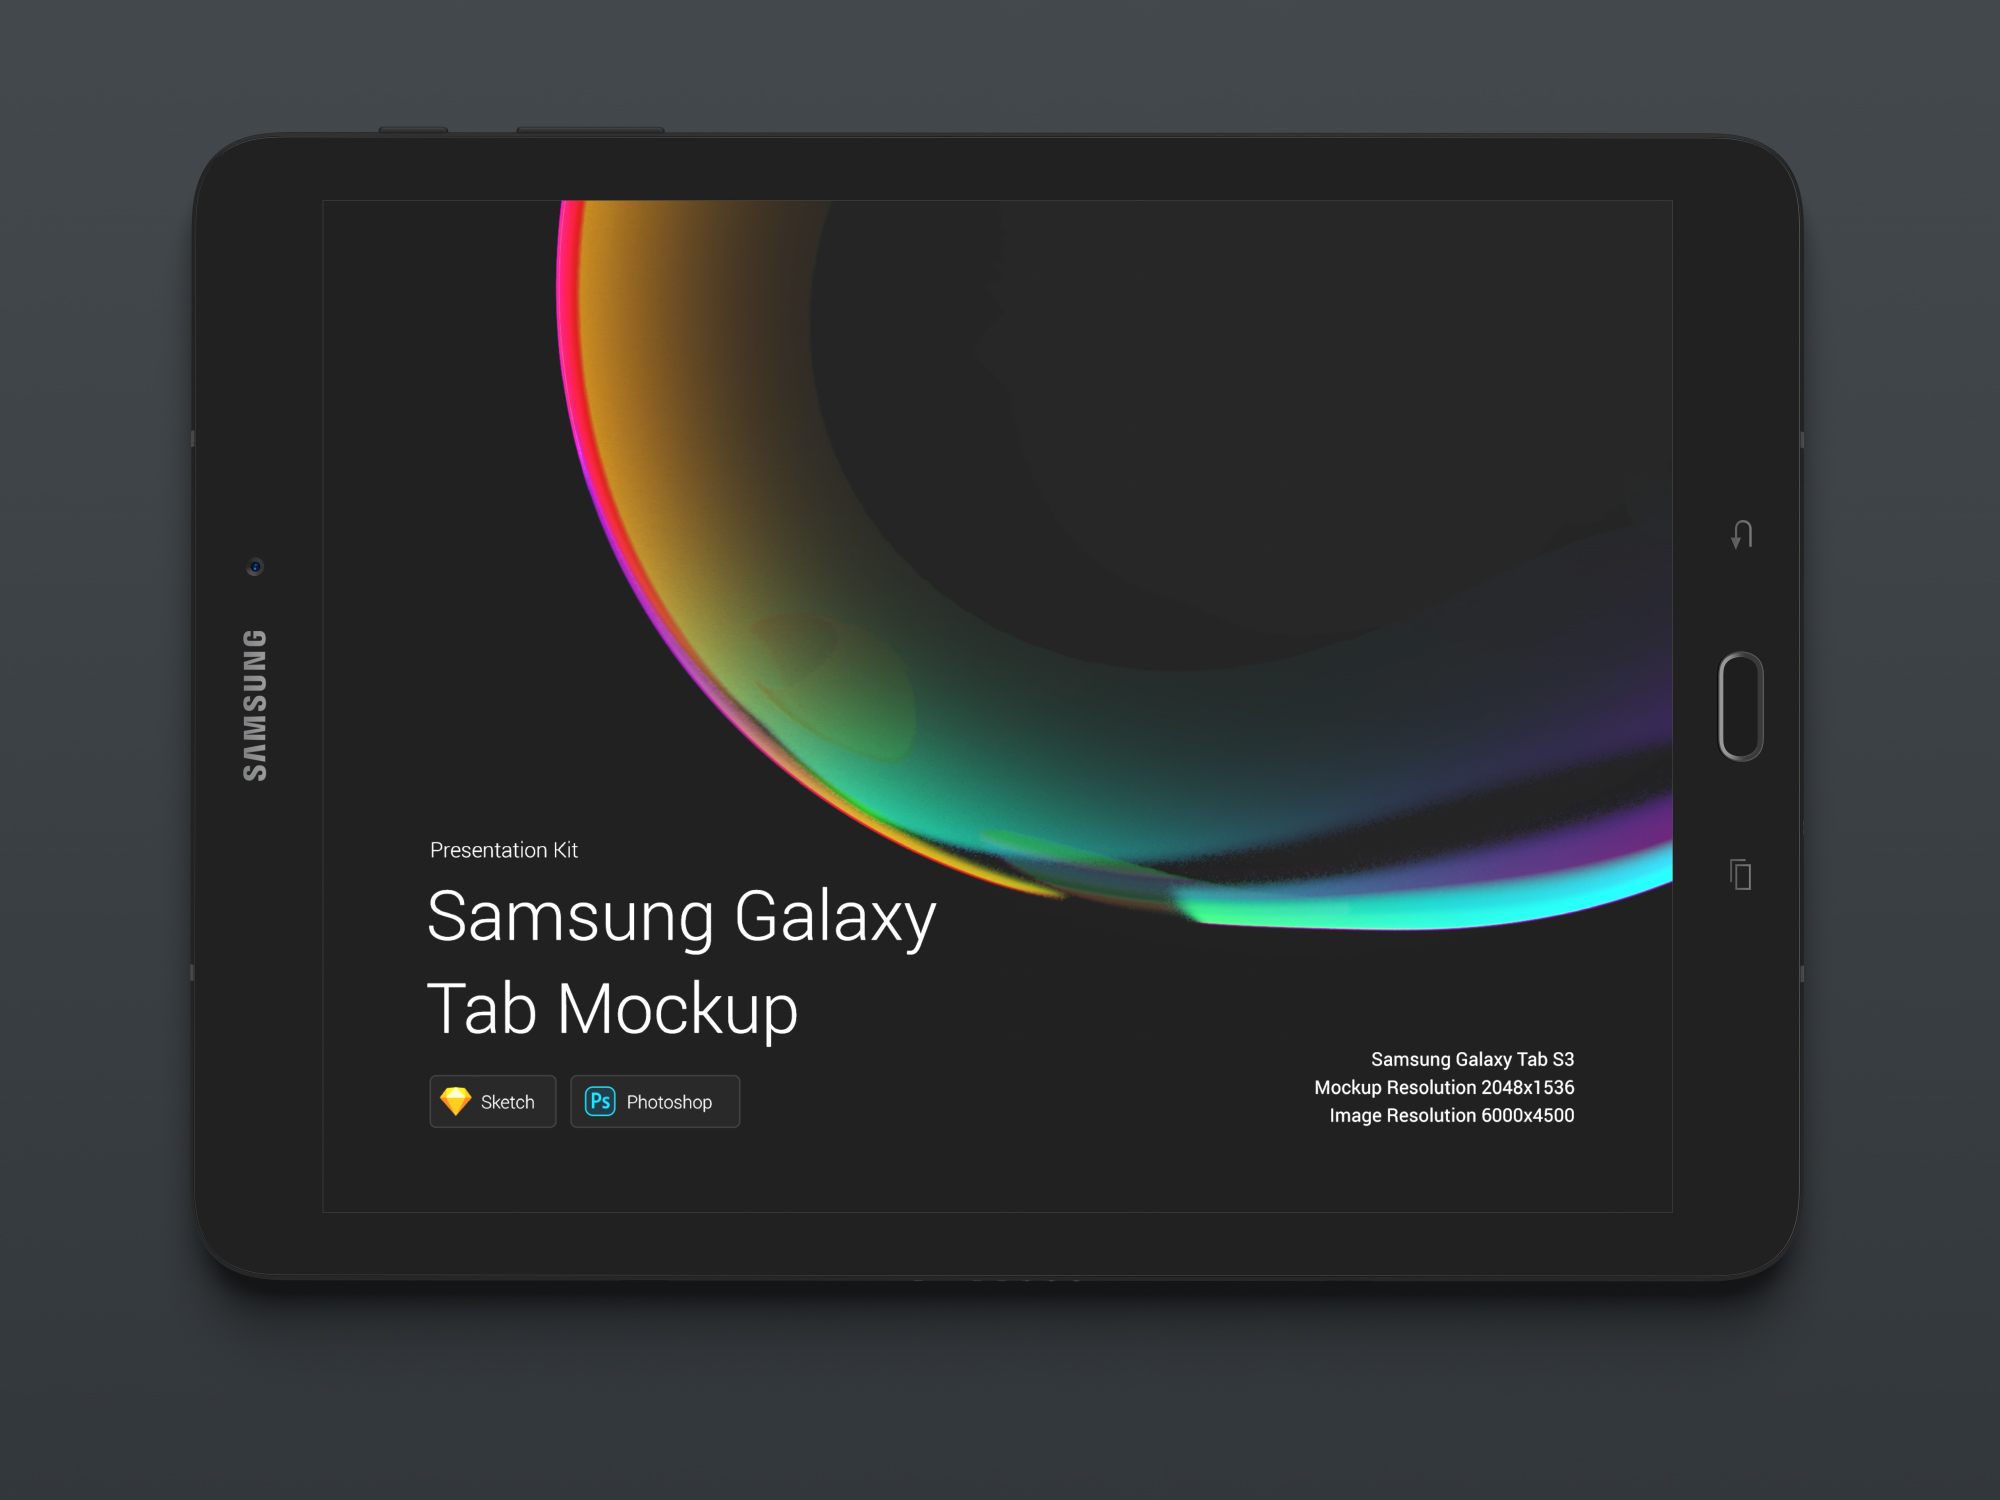 Download Samsung Galaxy S3 Mockups for Sketch and Photoshop